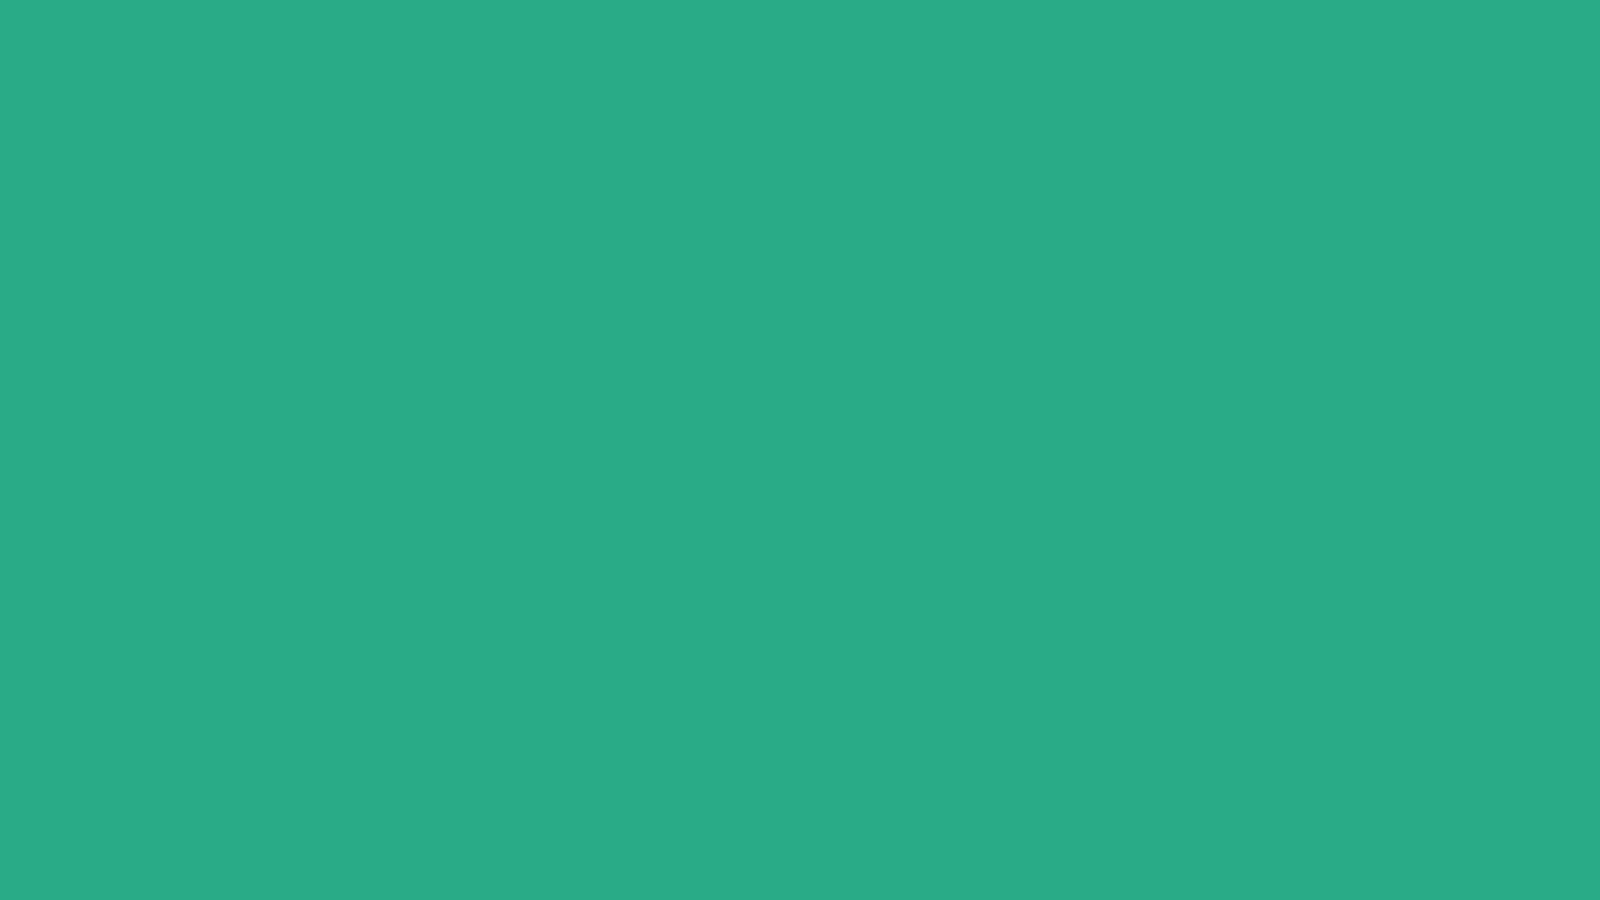 1600x900 Jungle Green Solid Color Background